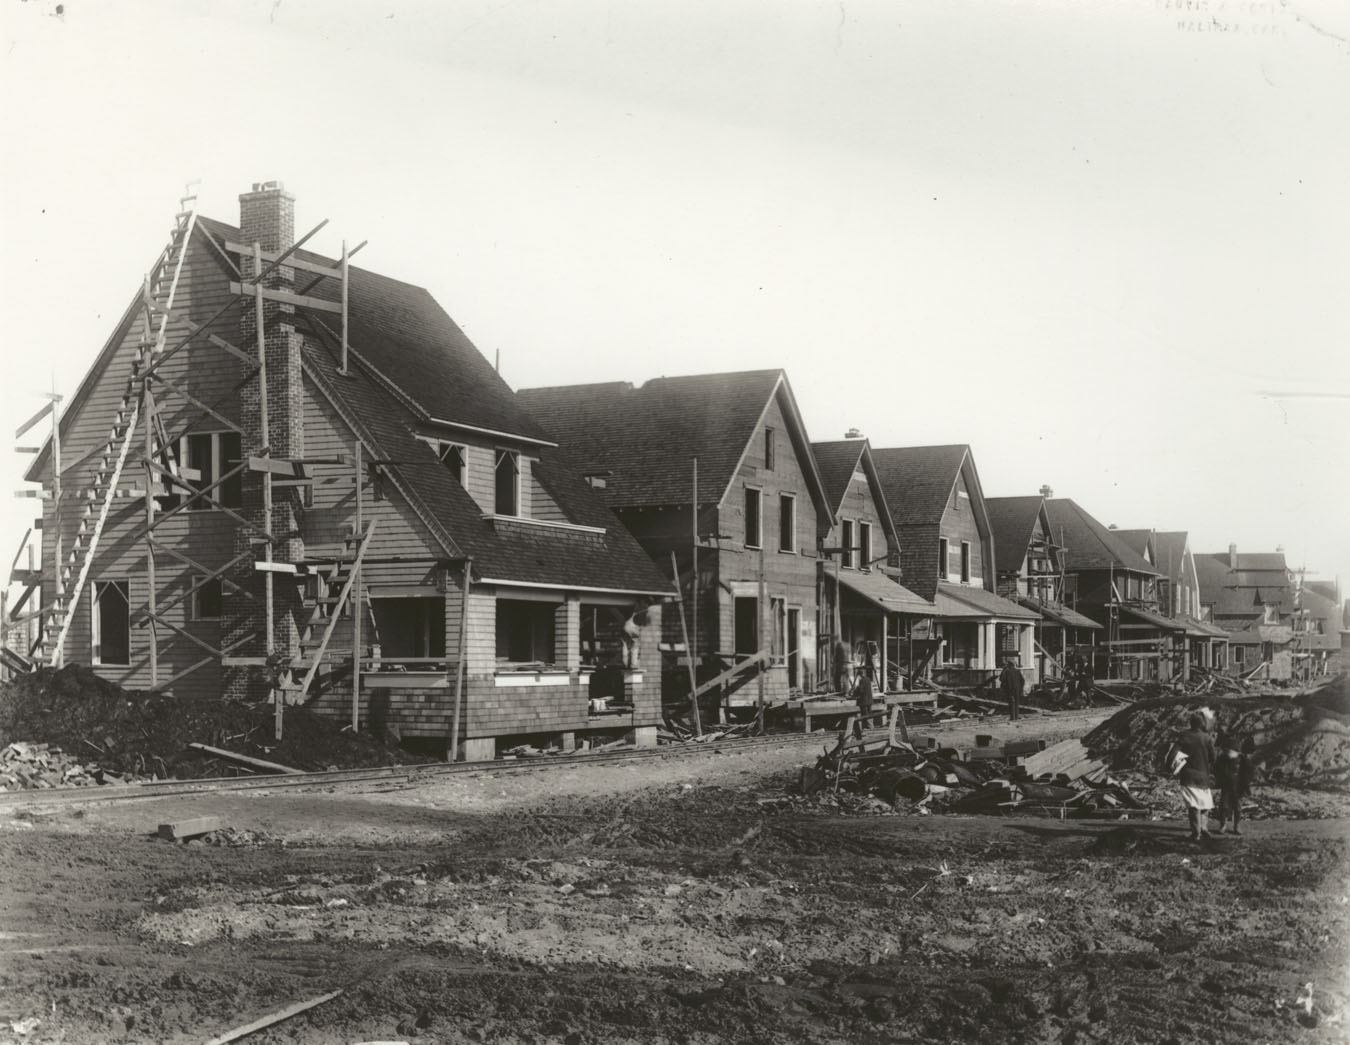 Halifax Relief Commission houses under construction at the corner of Kaye and Robie streets, Halifax